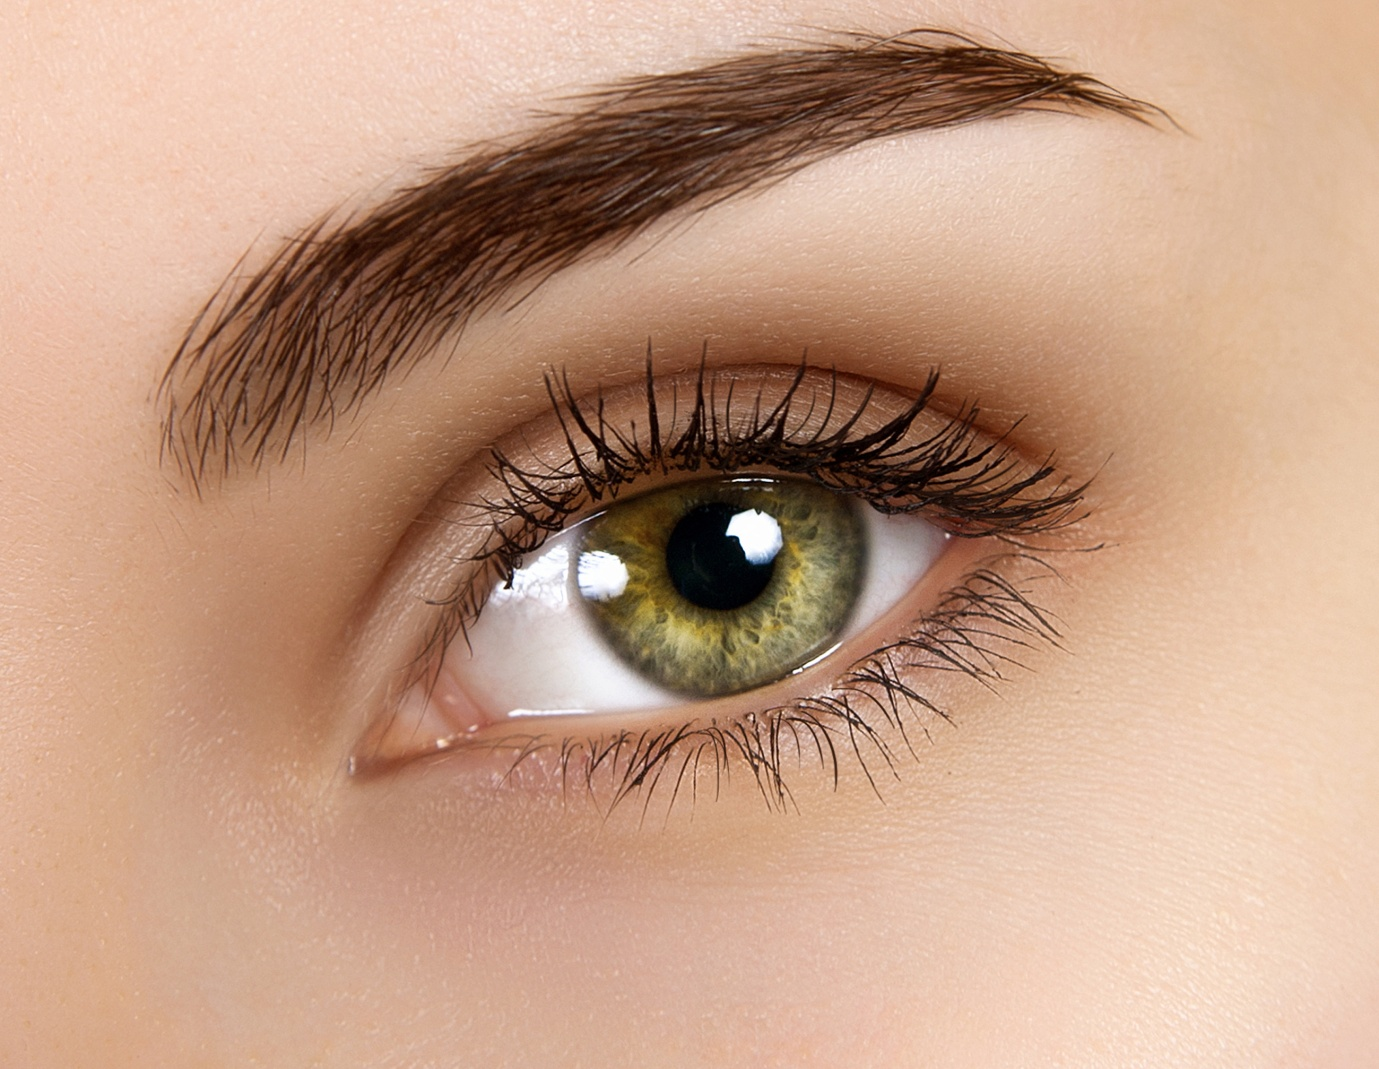 How To Make Eyes Look Attractive Naturally